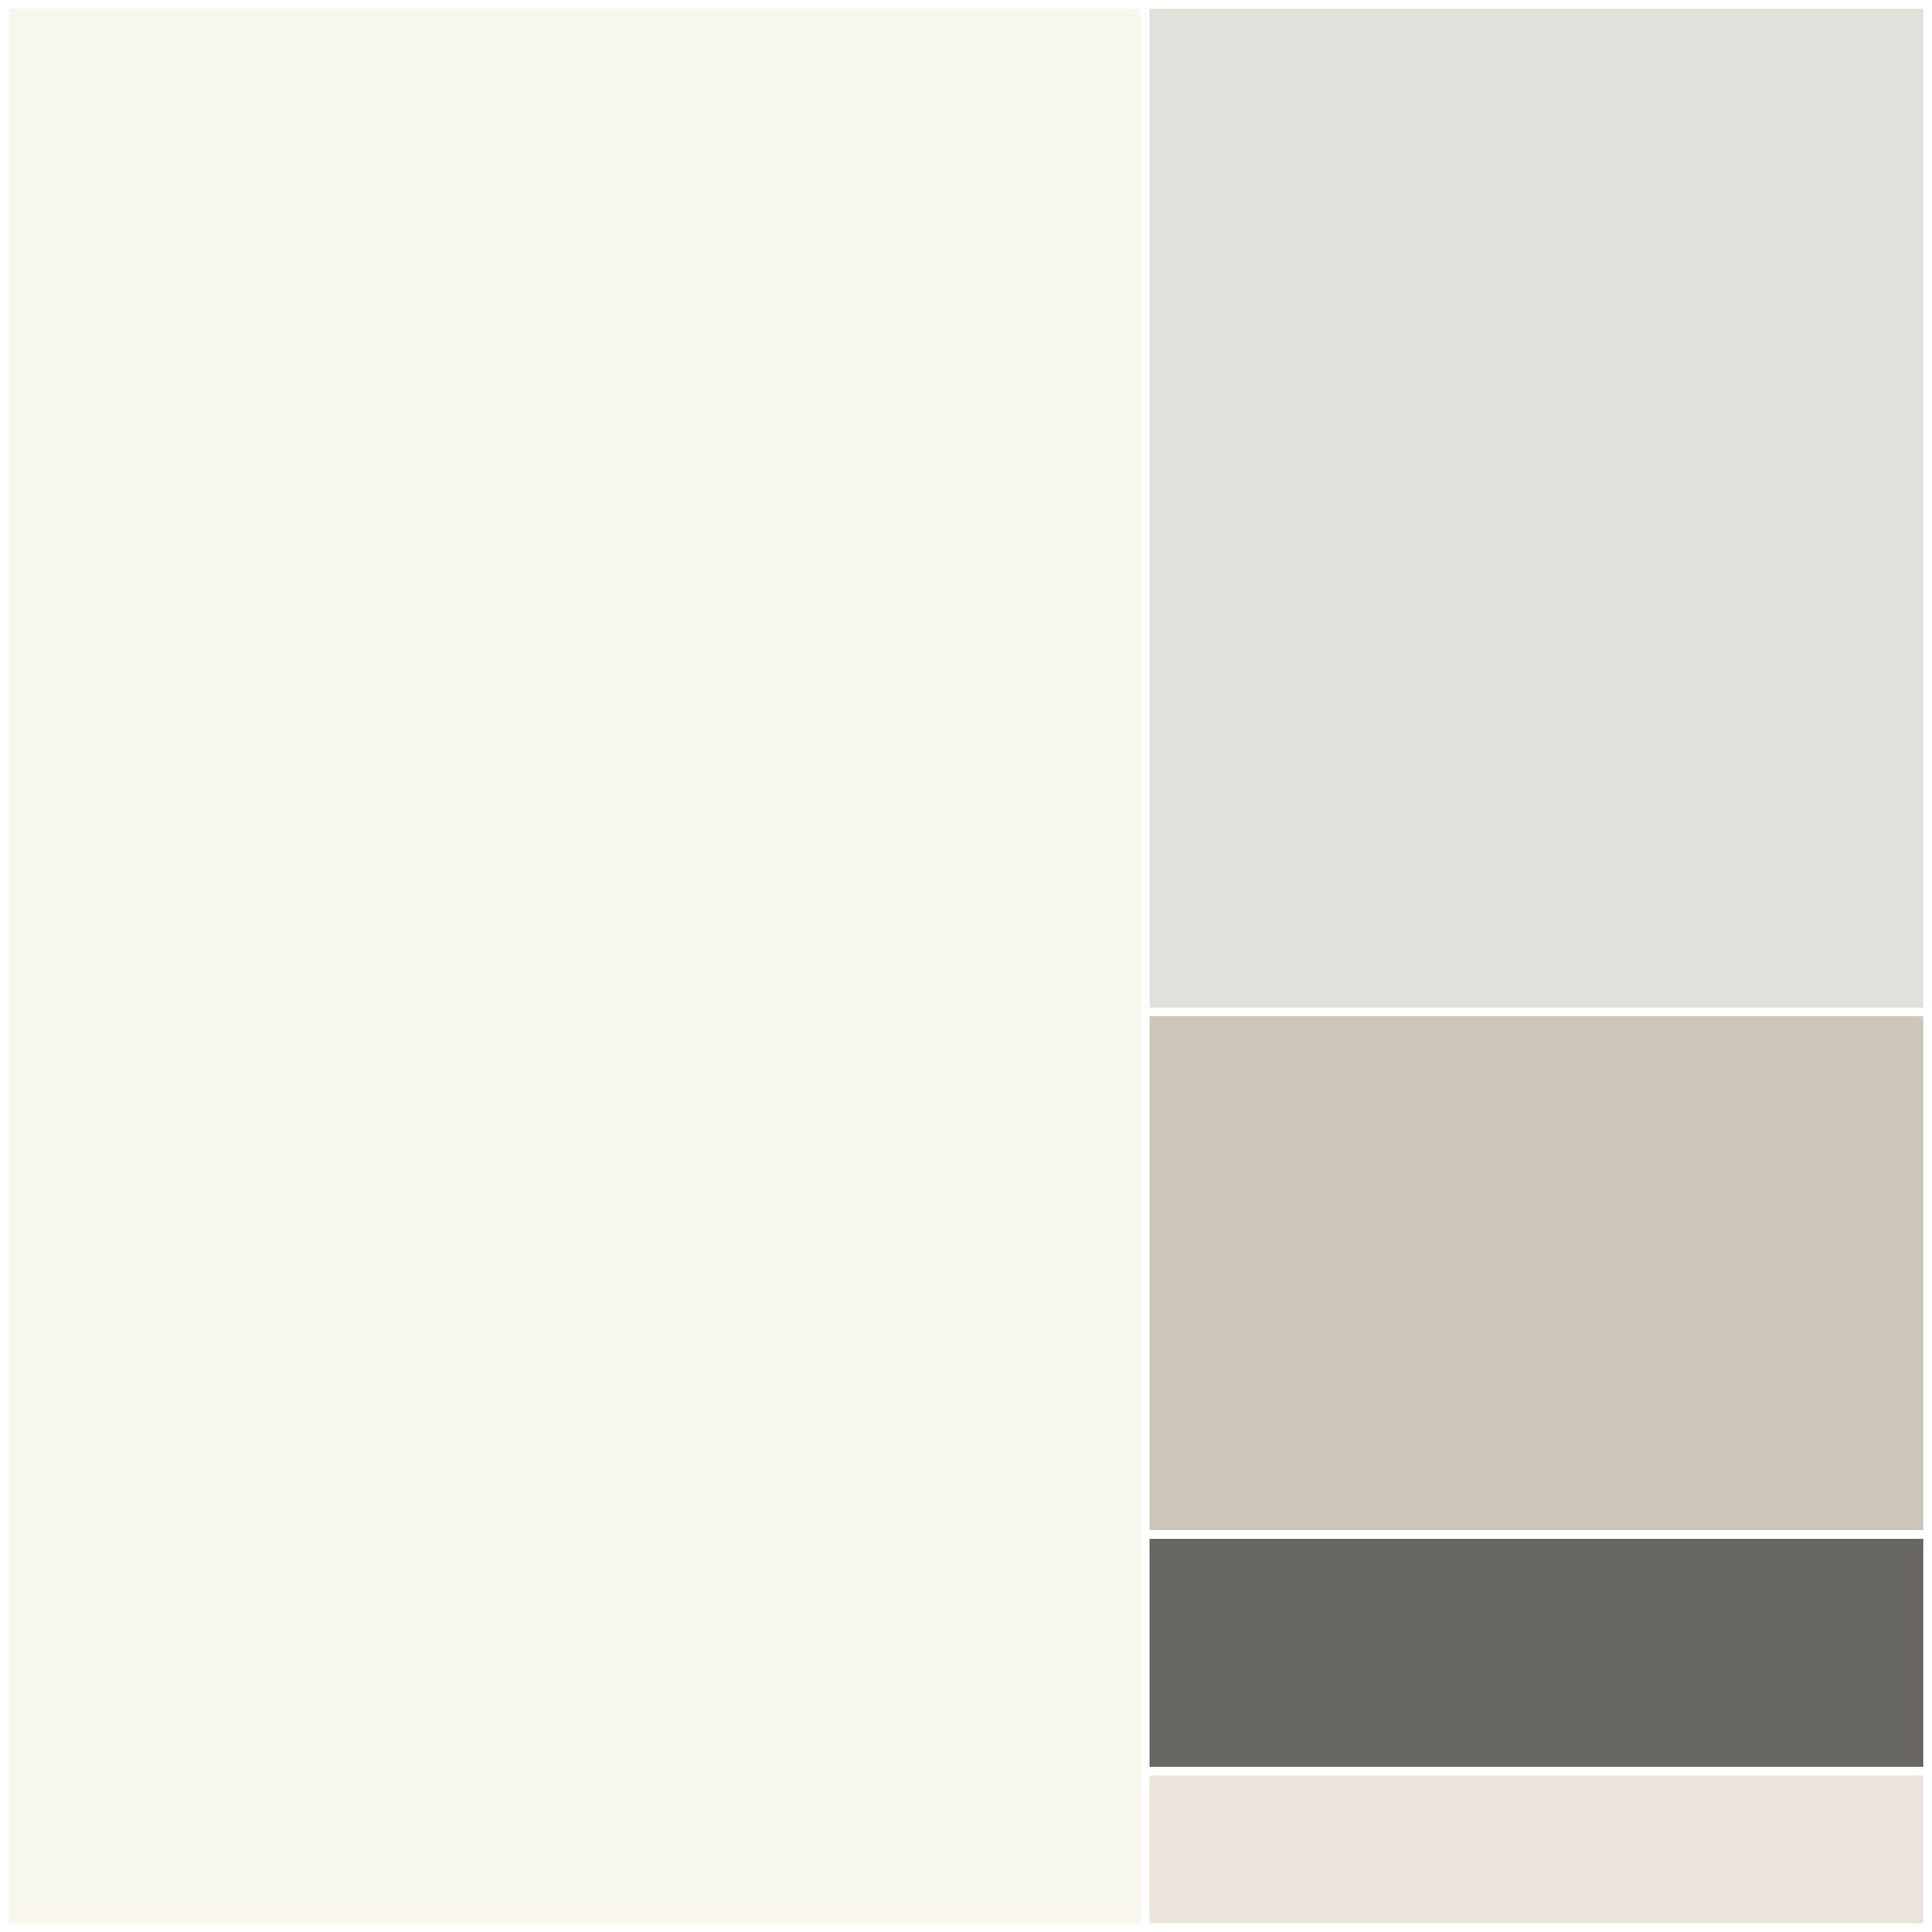 Millions Of Miles A Peek At My Favorite Spaces In Our House Paint Colors For Living Room Foyer Paint Colors Farmhouse Paint Colors Interior